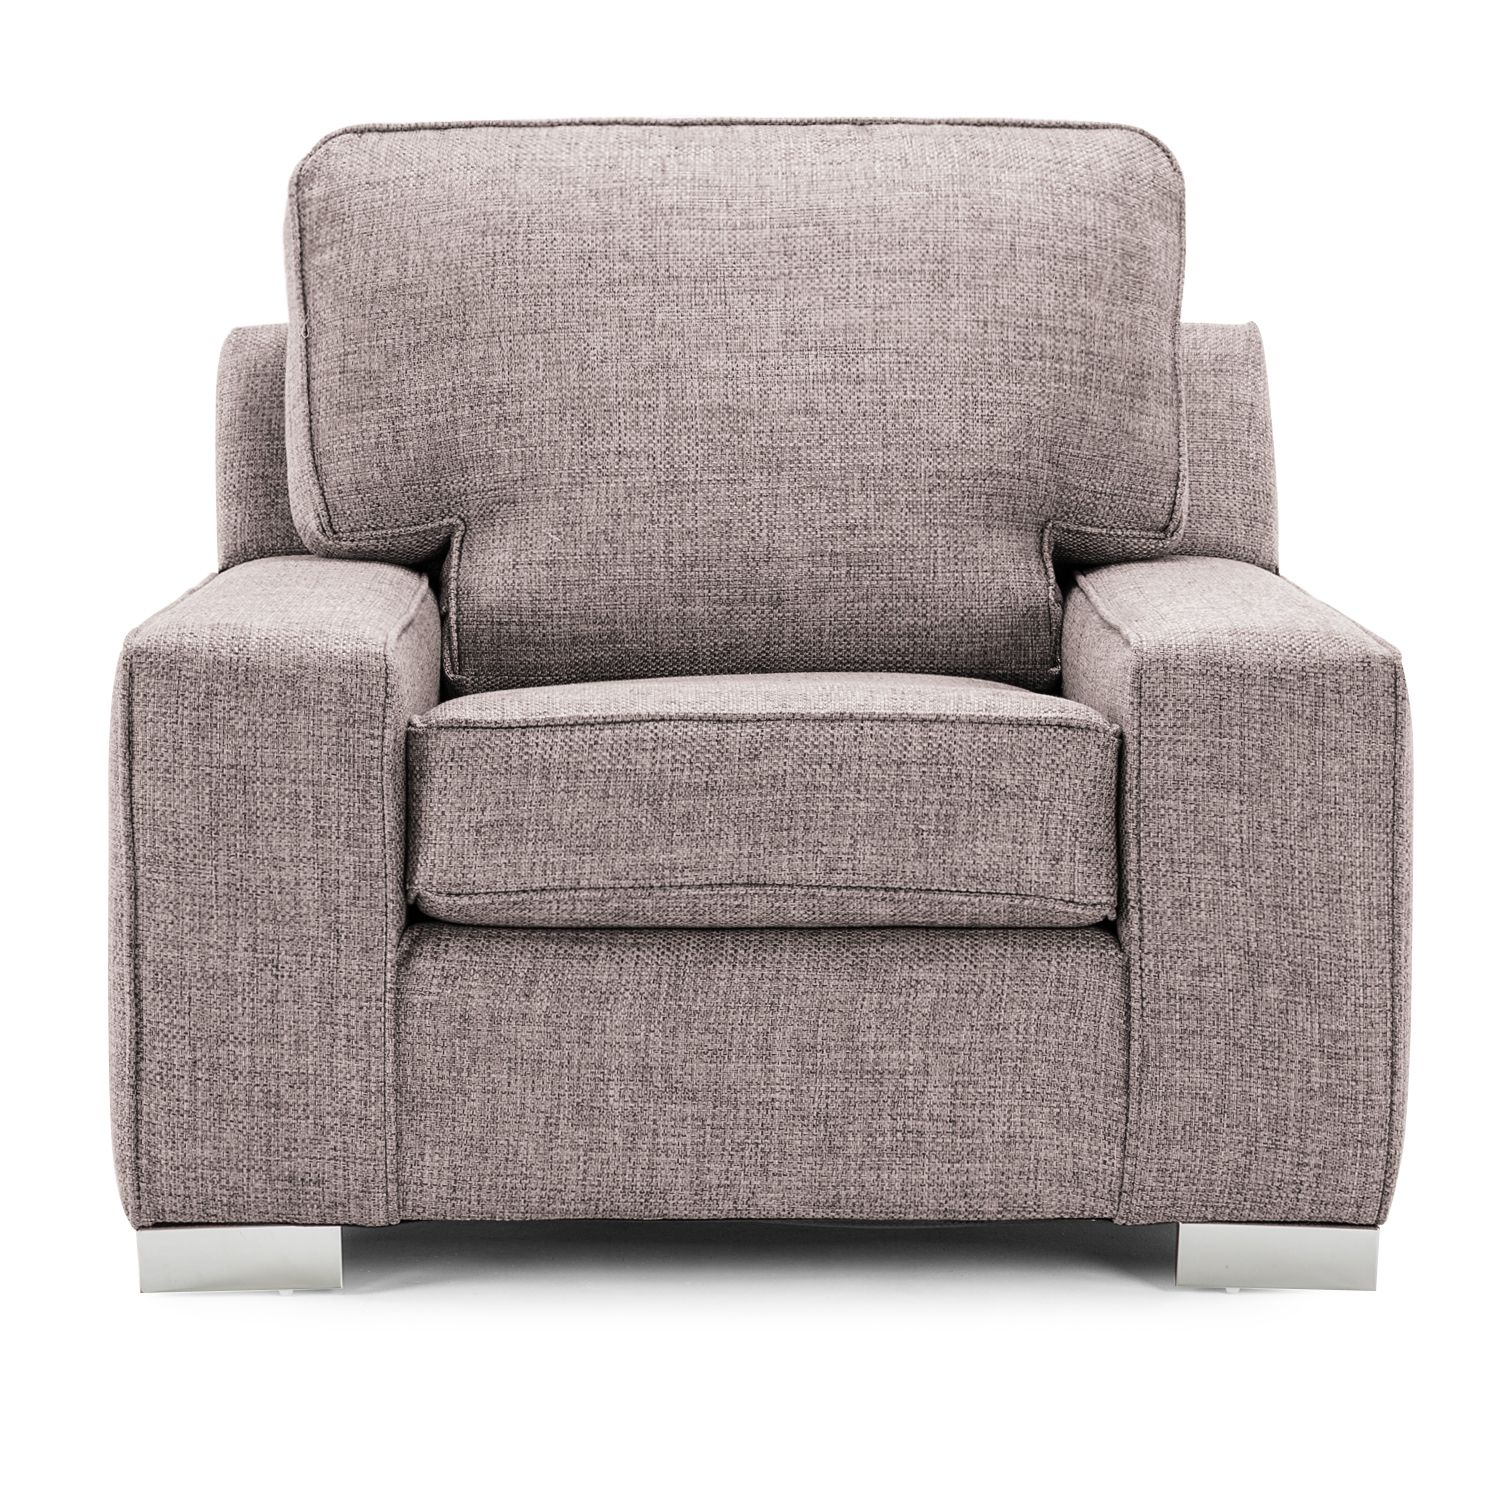 armchairs for sale | armchairs uk | armchairs cheap ...